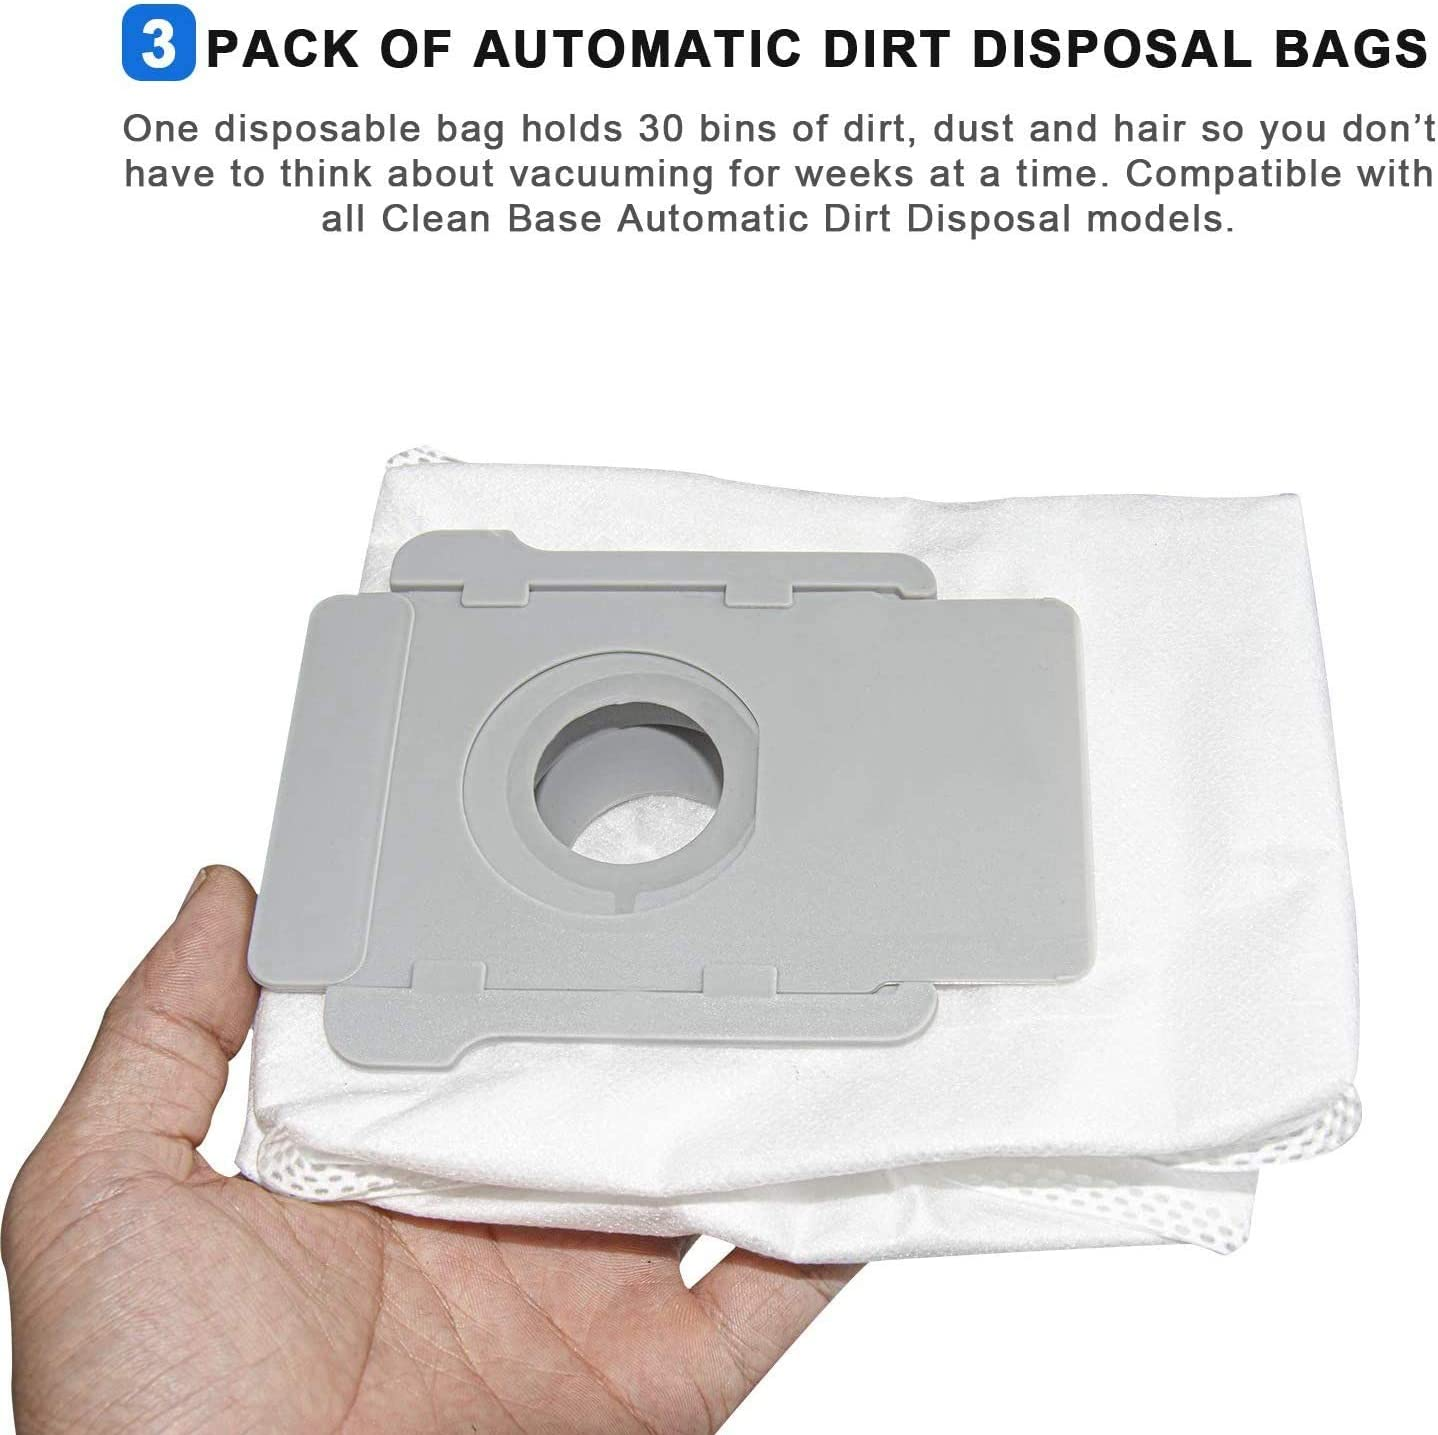 Binchil 4 Pcs Dirt Disposal Bags/&Filter Replacement Parts for I7 I7+//Plus Clean Base Robot Vacuum Cleaner,4640235